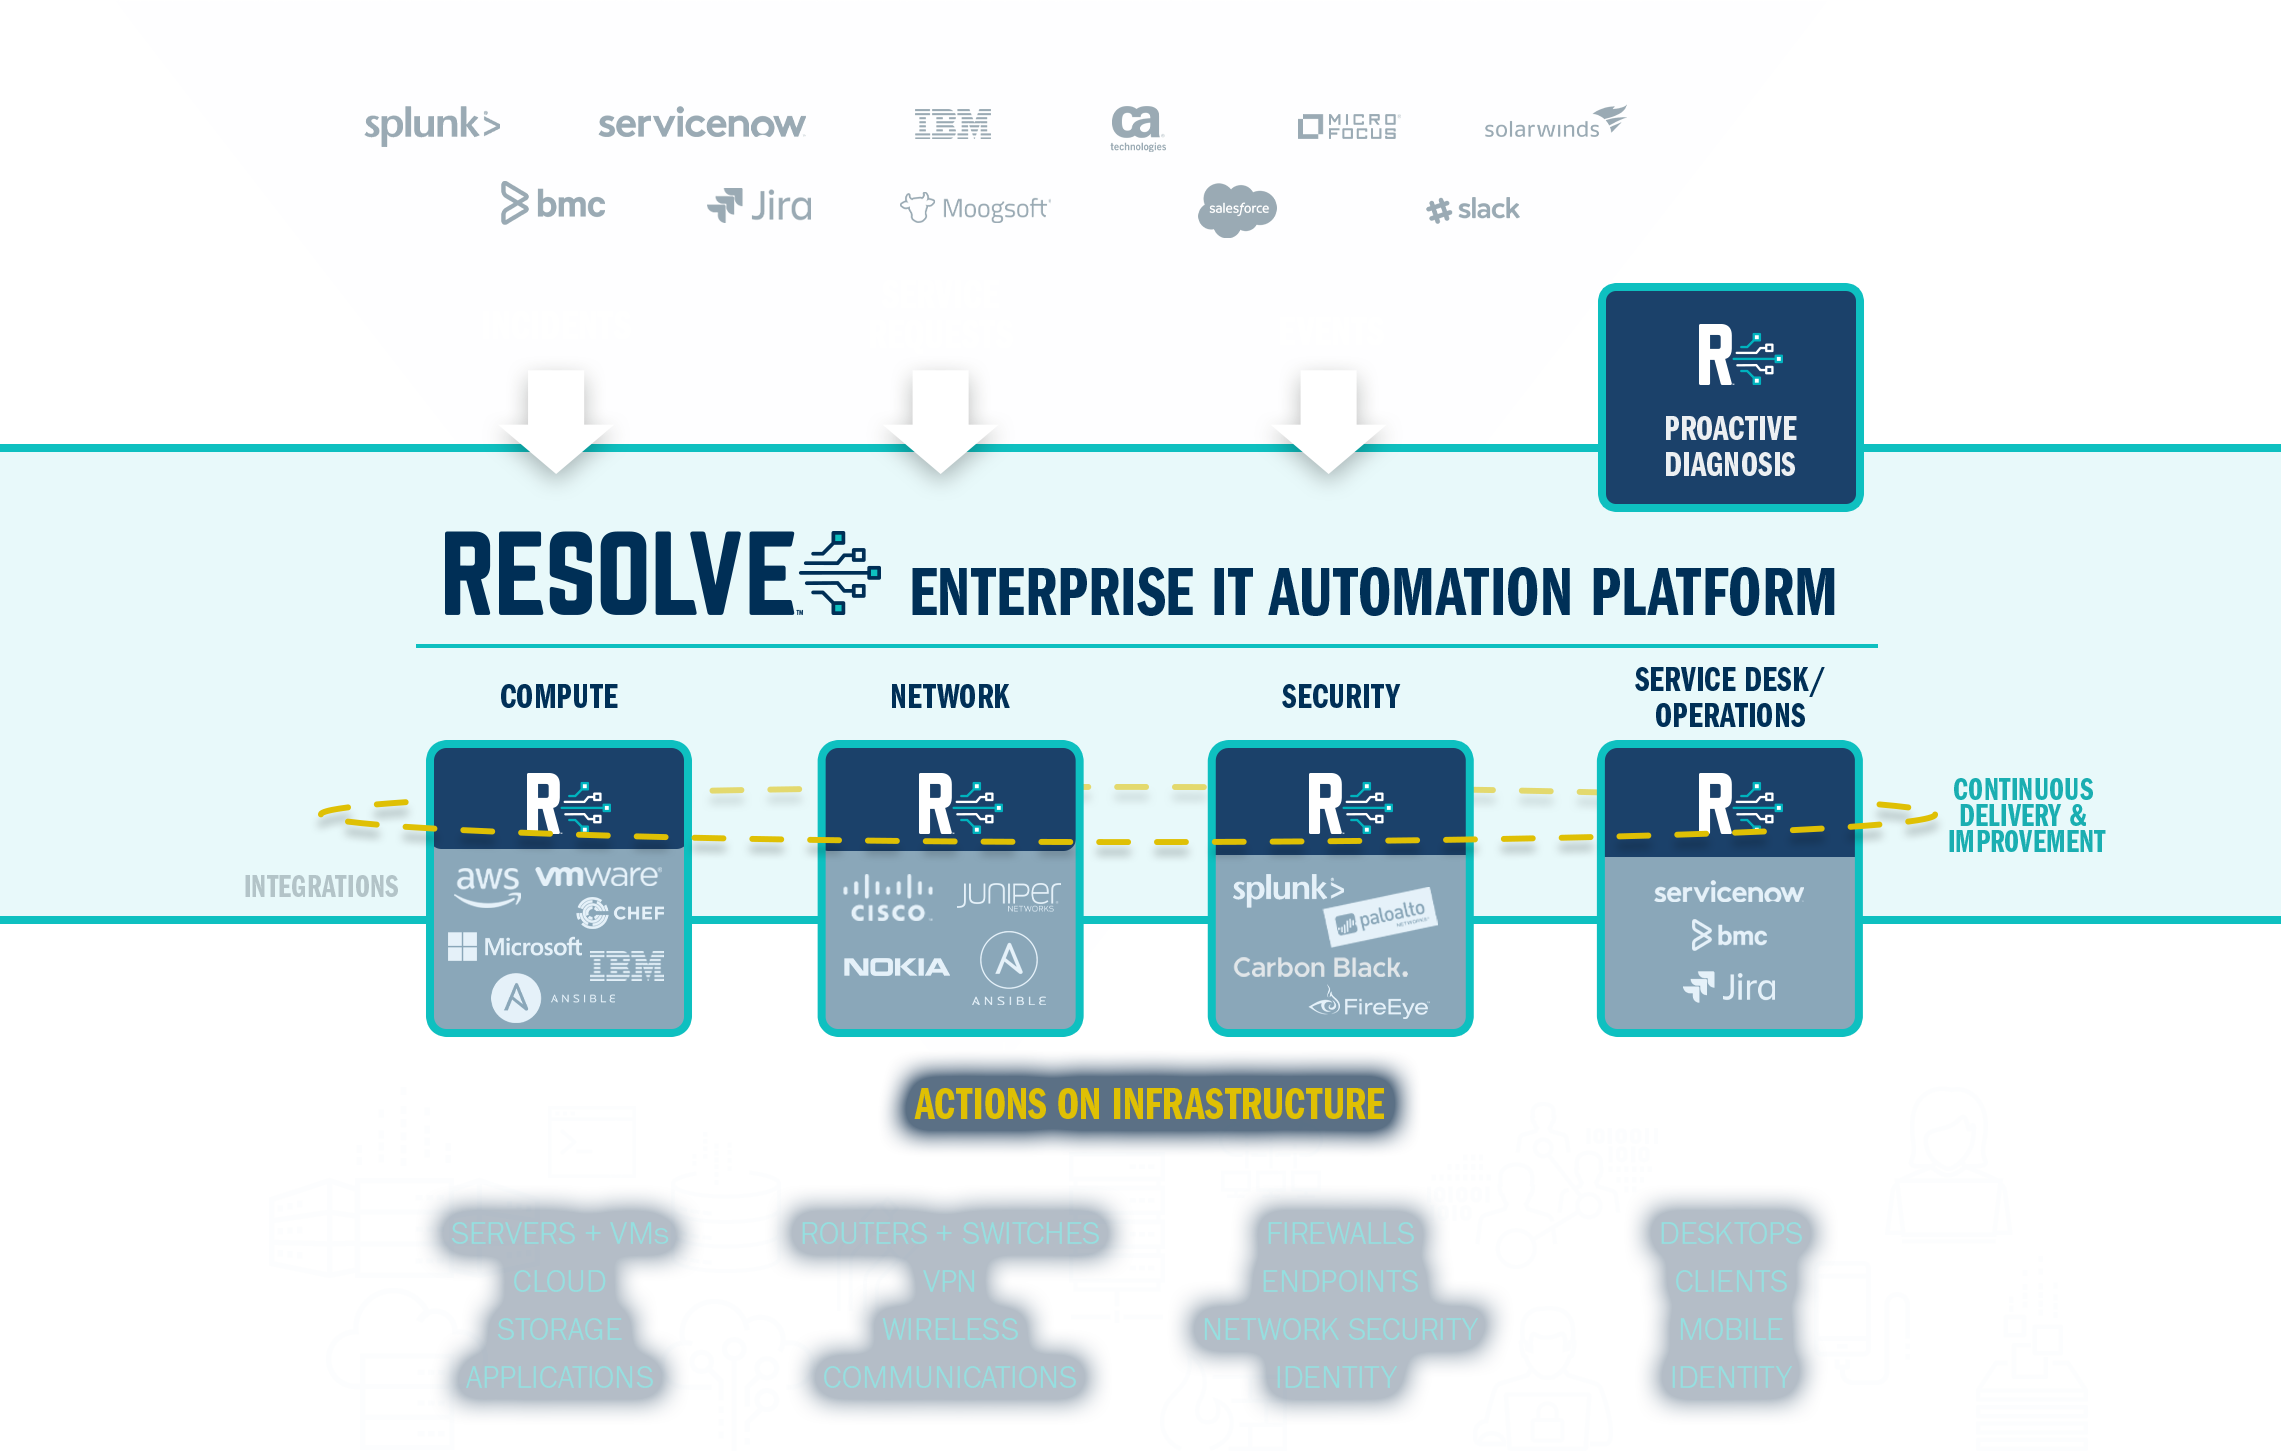 IT Automation + Orchestration Platform for ITOps, NetOps, & SecOps